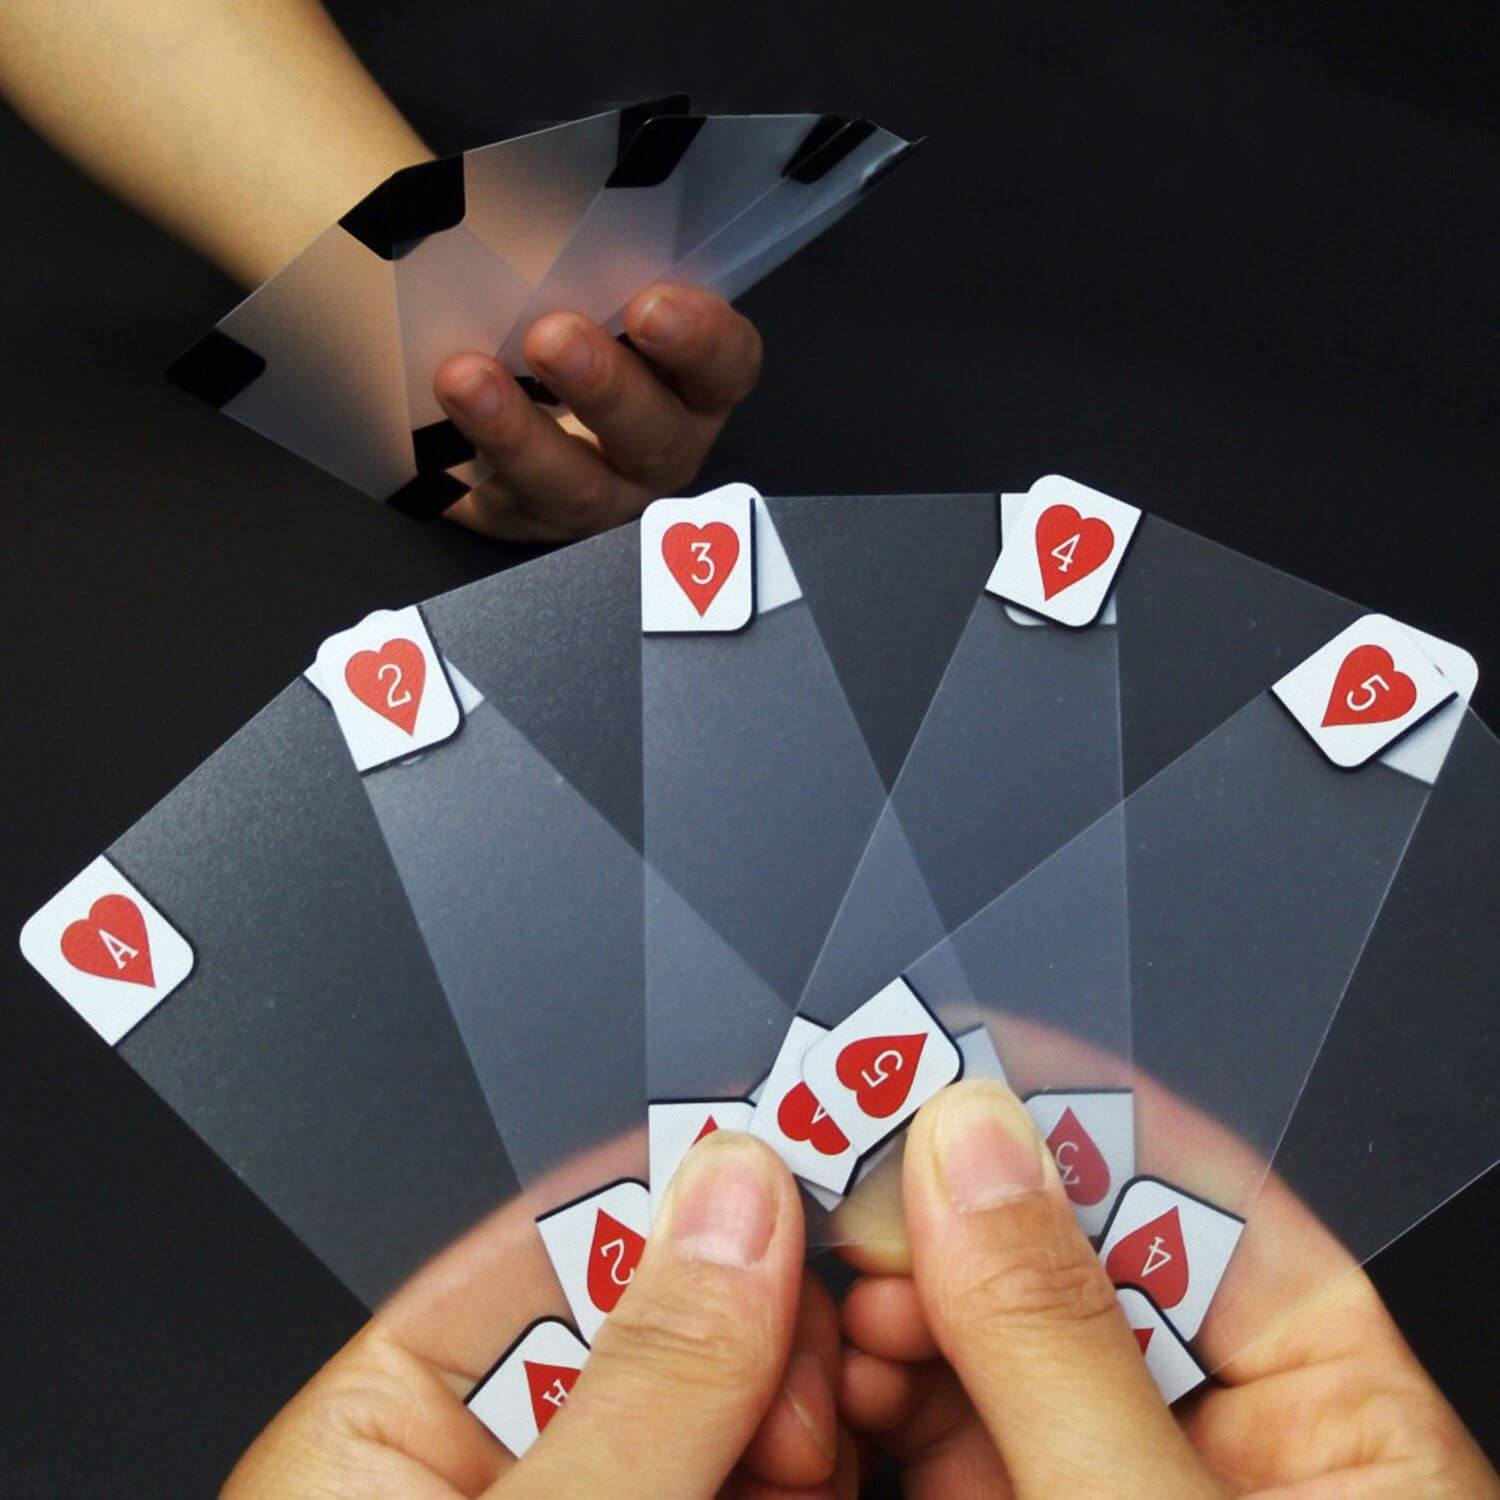 5 card draw poker online essential information